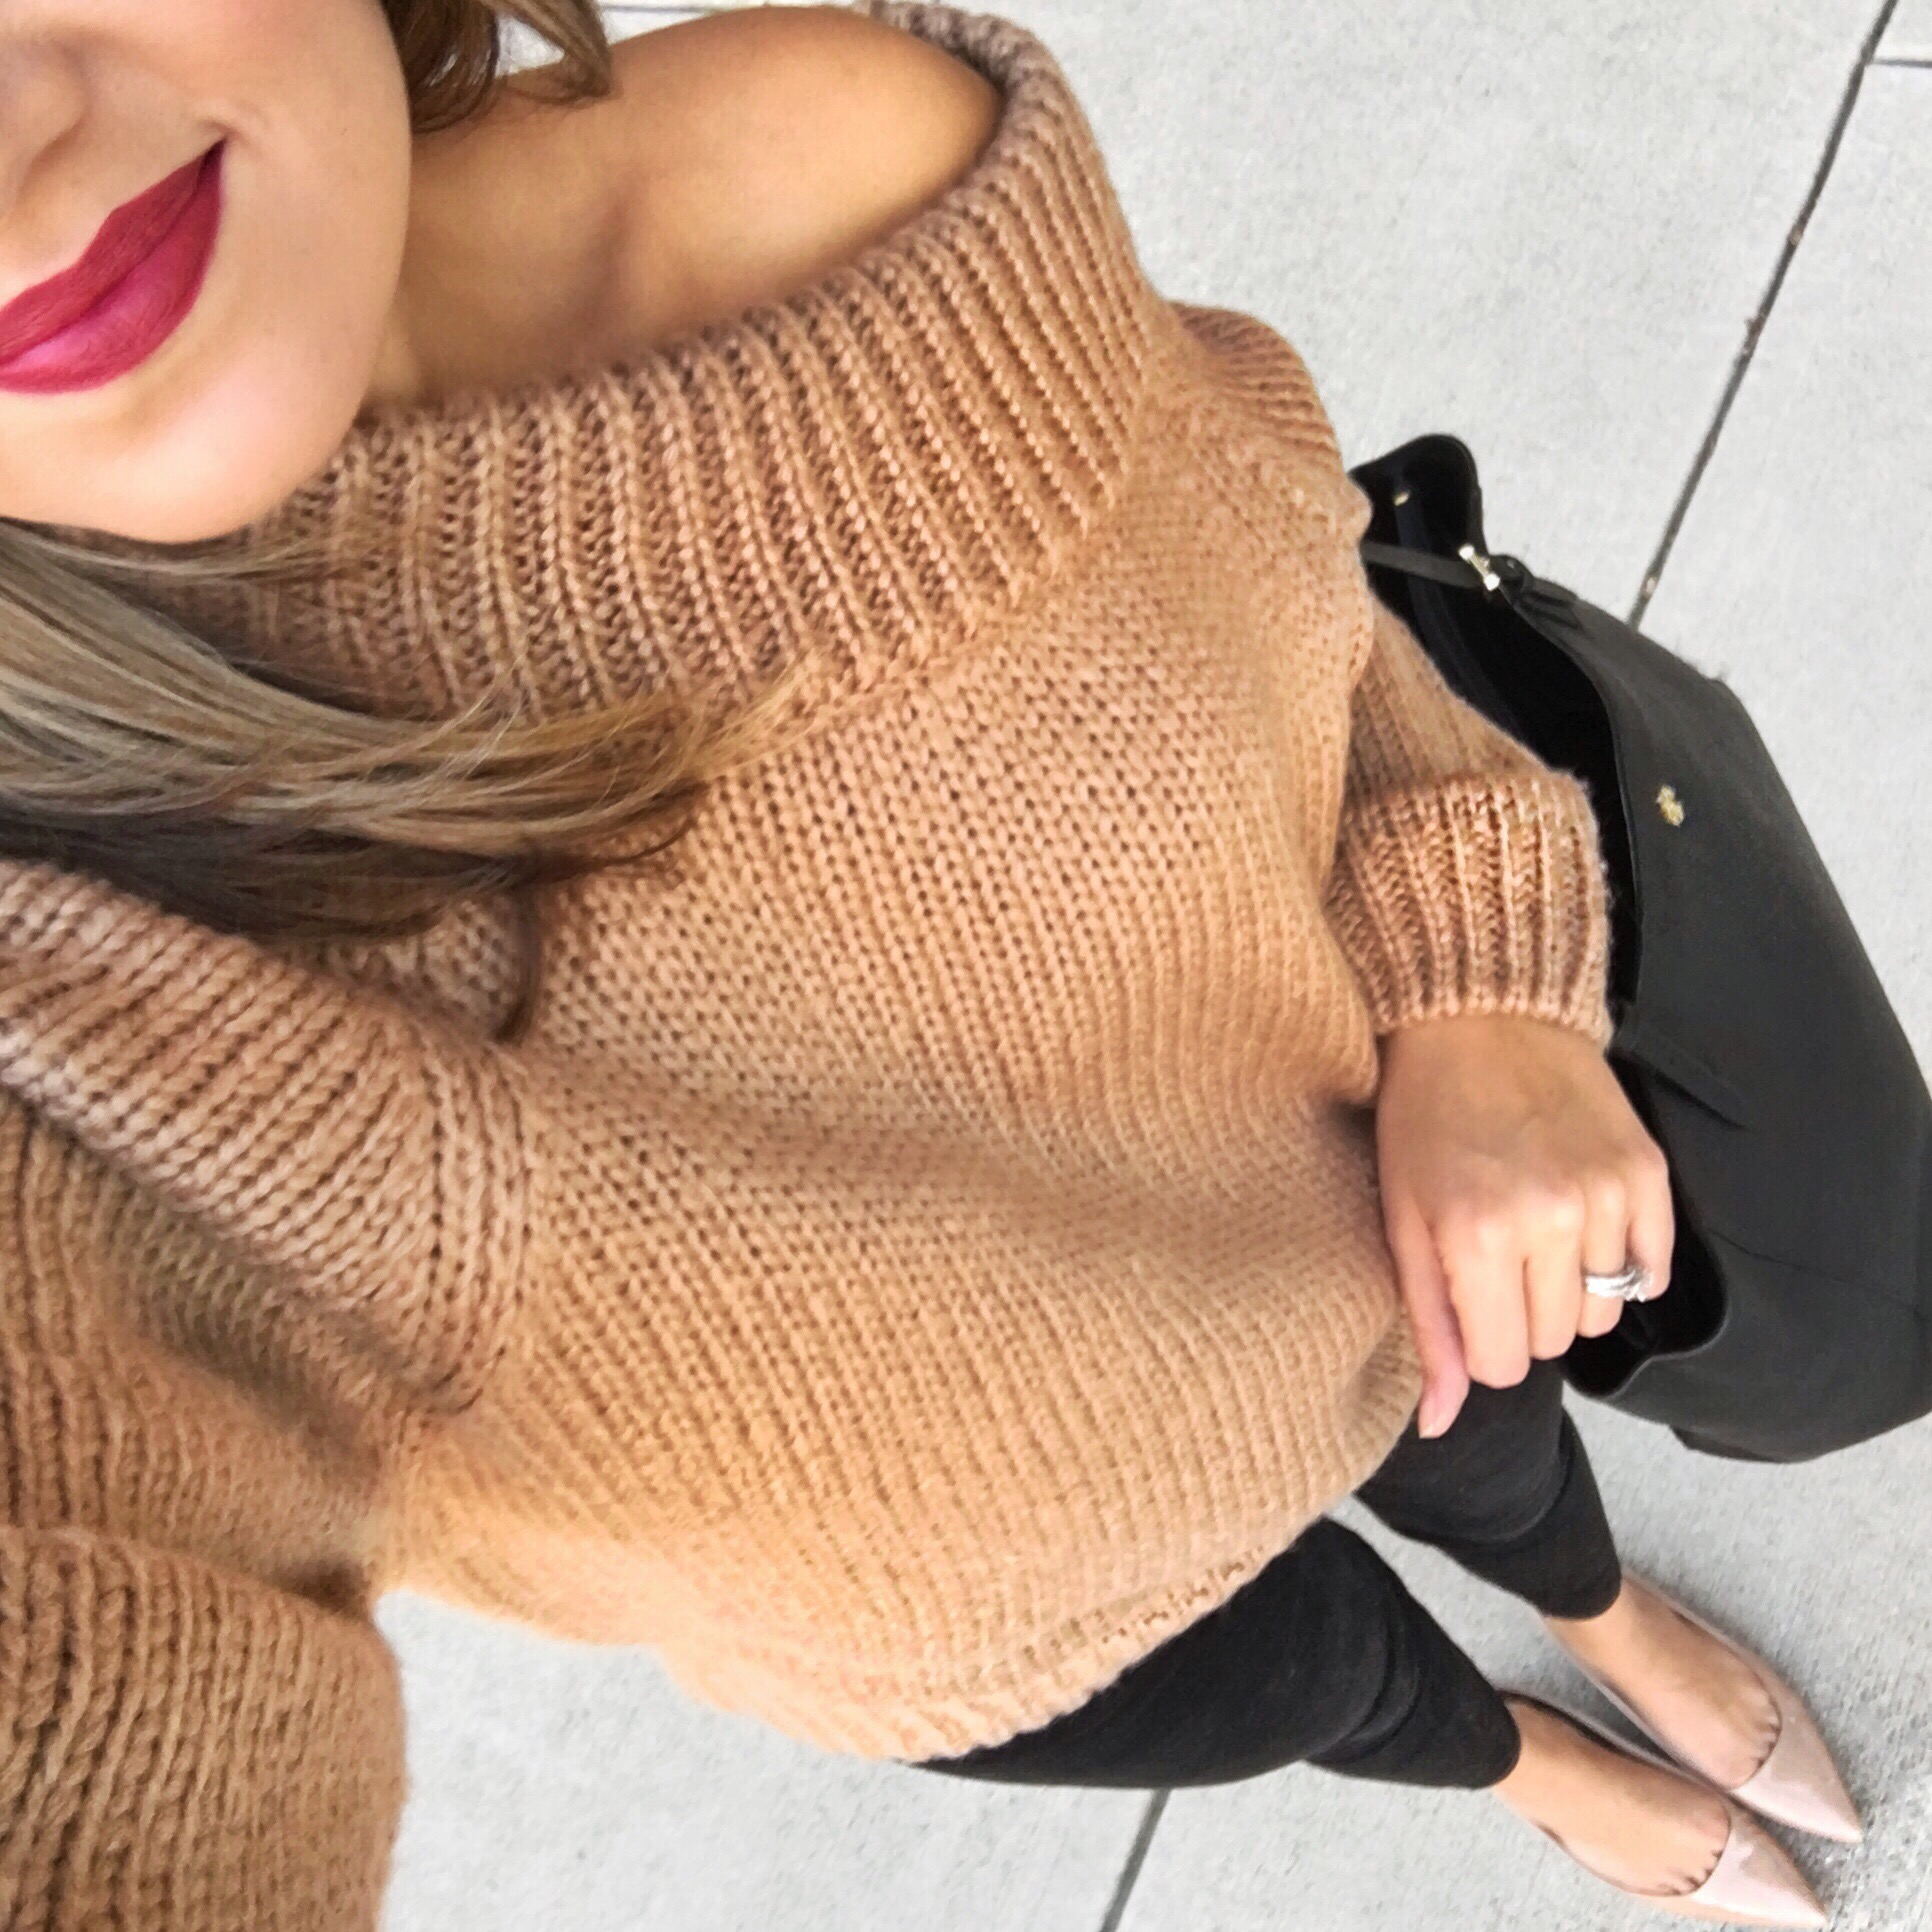 Camel off shoulder sweater | bylaurenm.com | instagram.com/laurenmdix